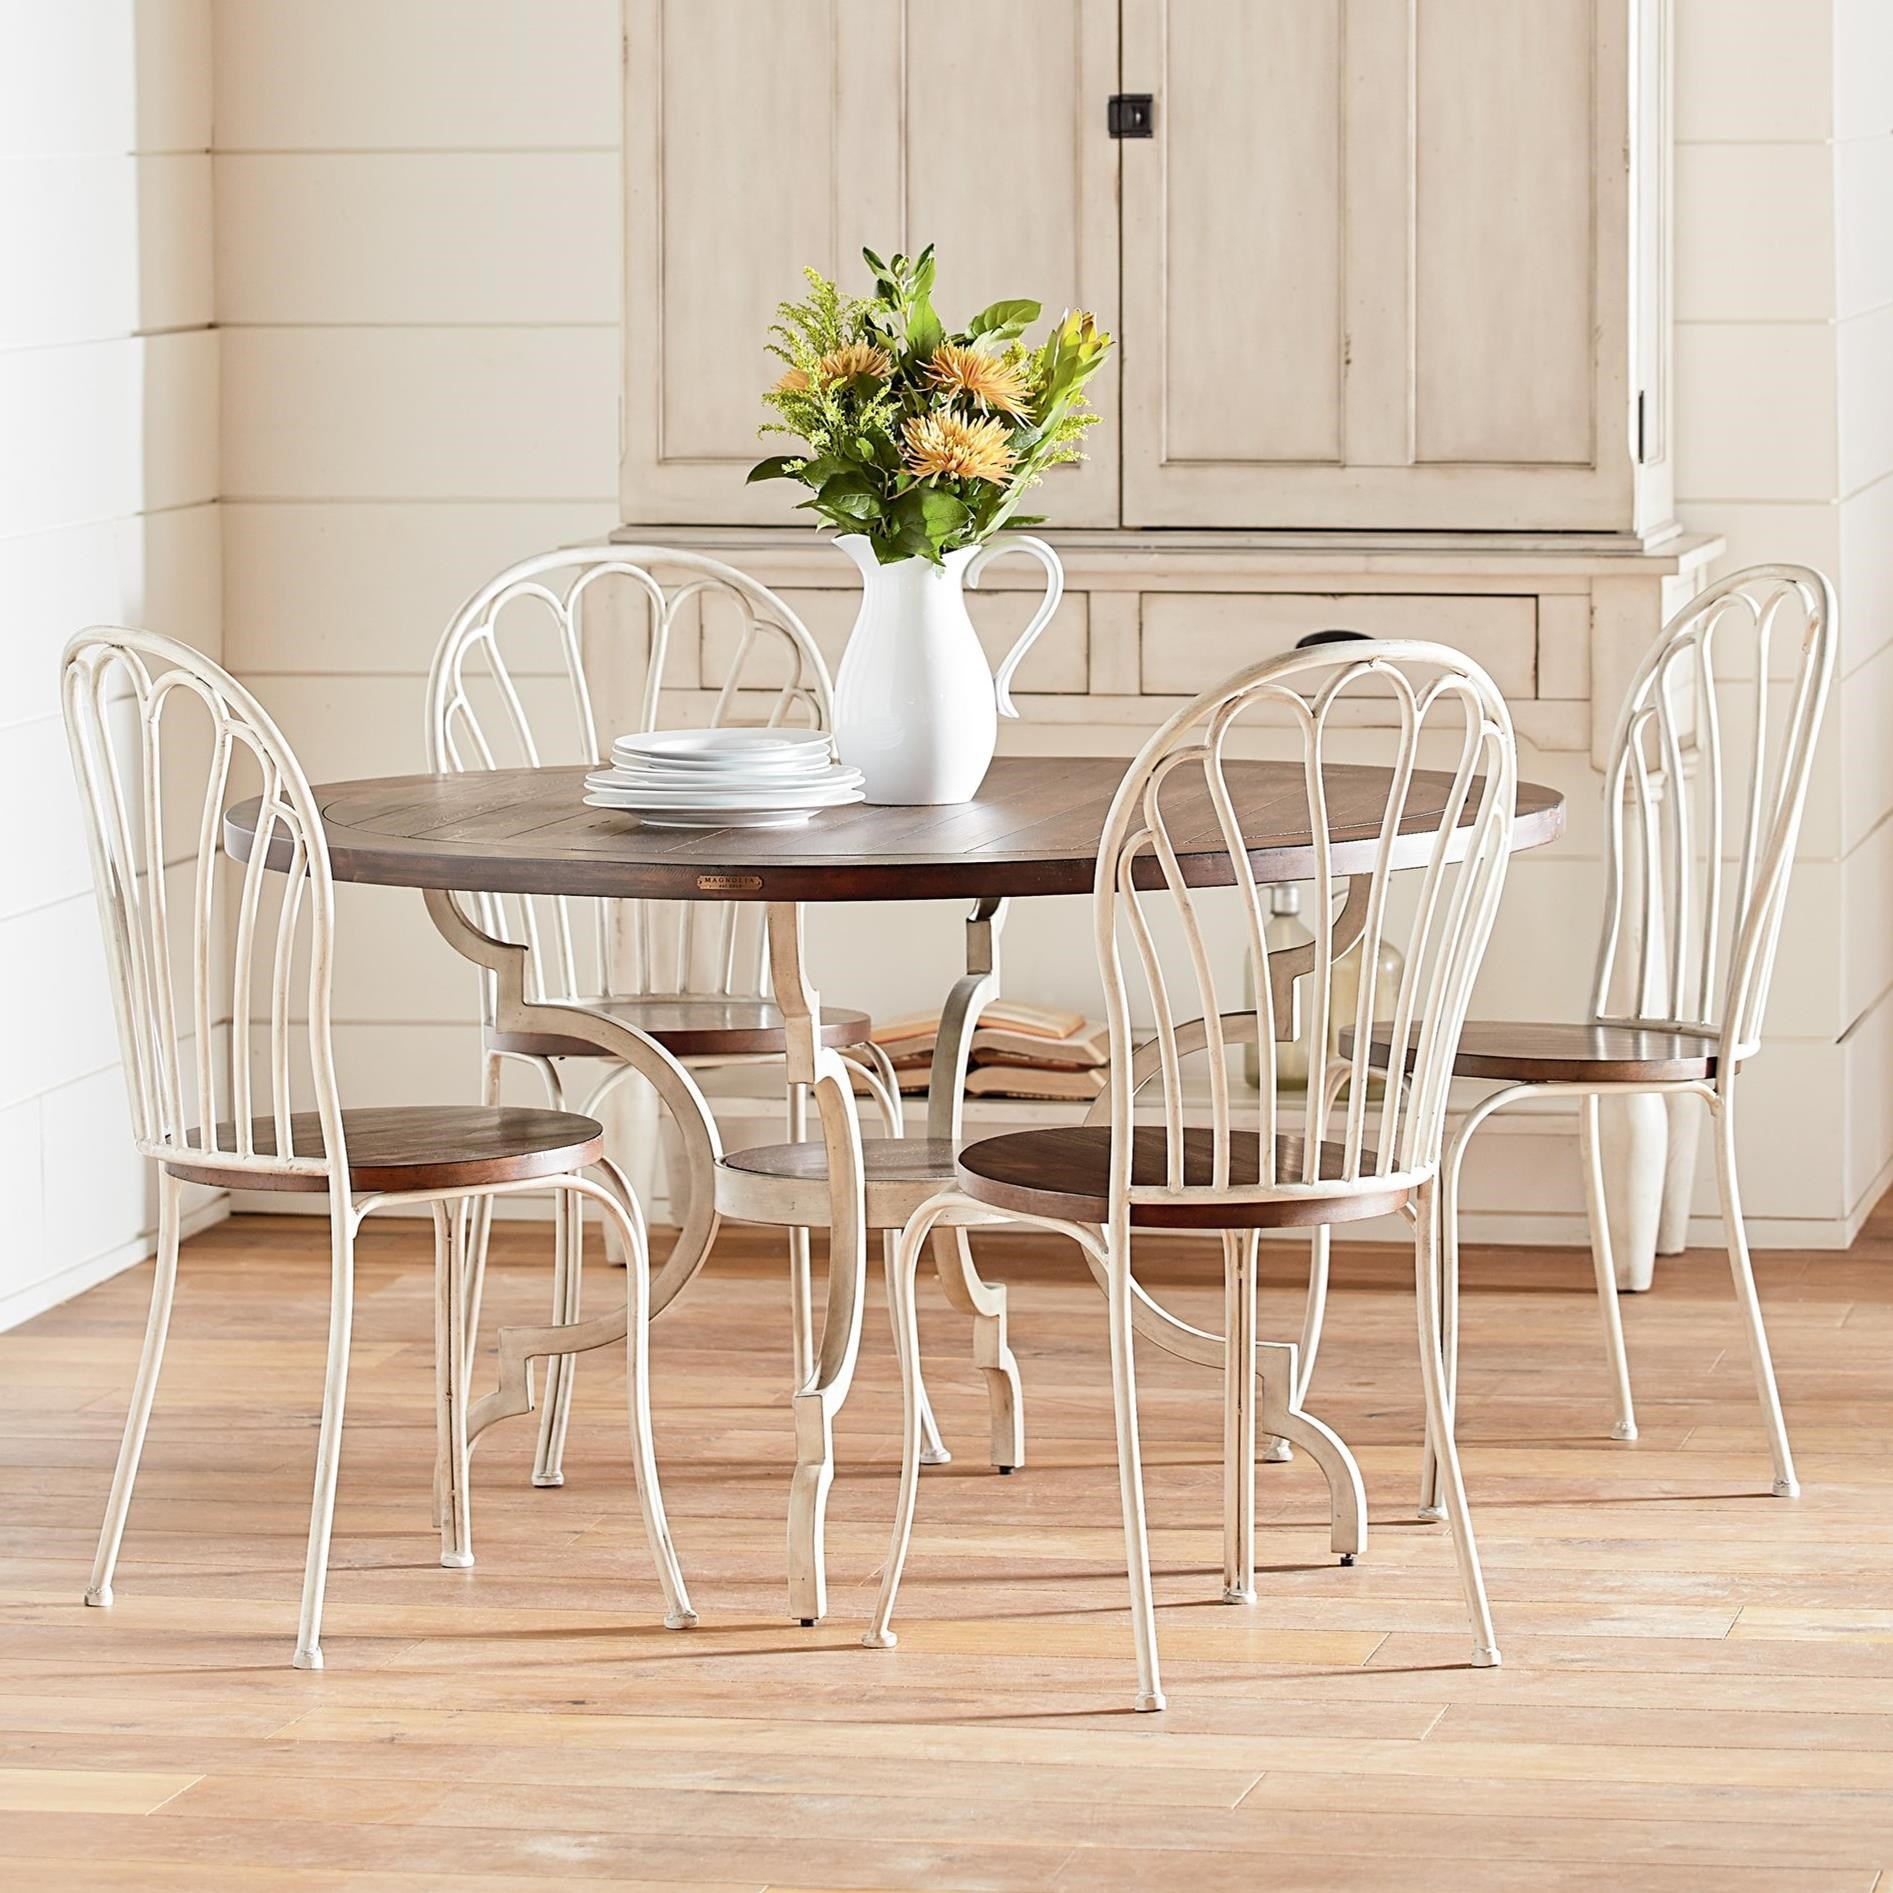 5 Piece Round Table Chair Set